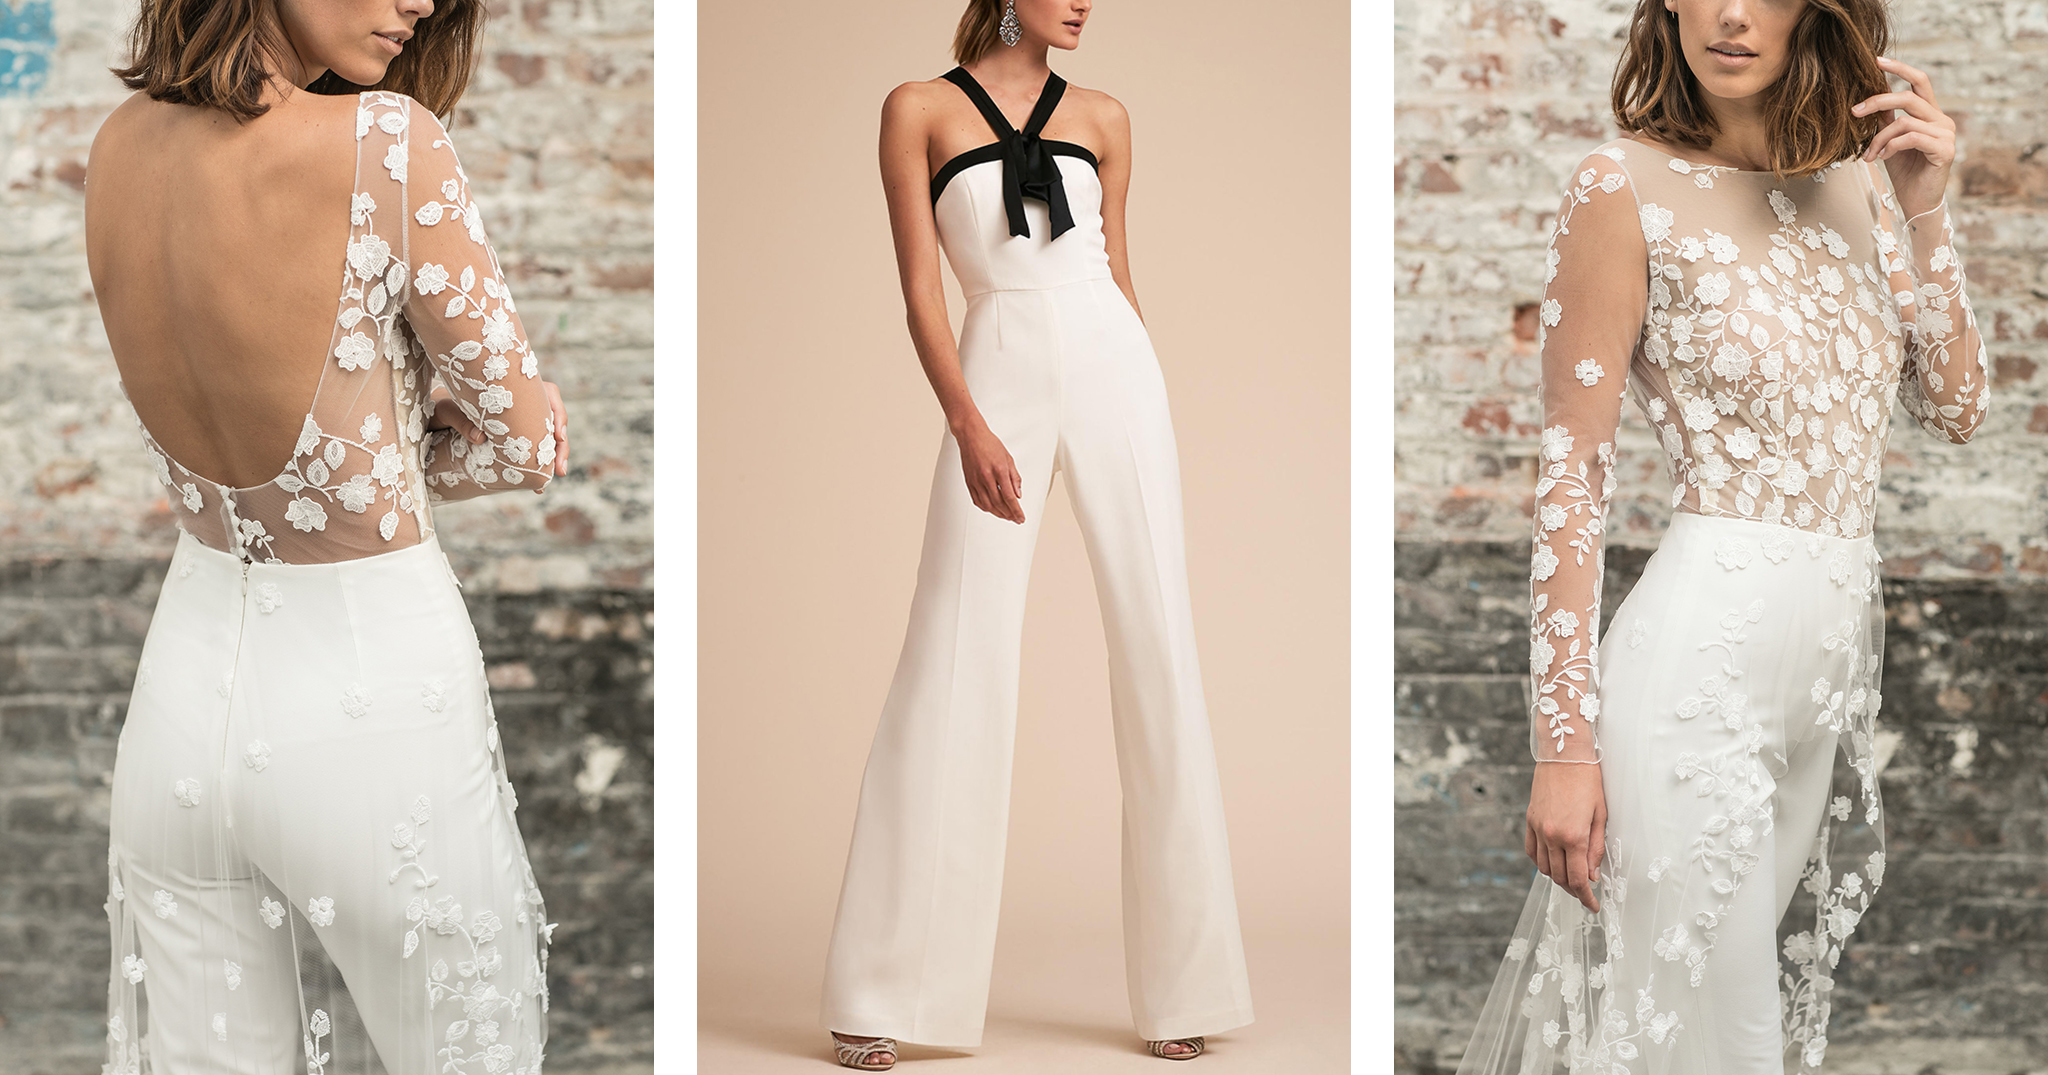 How To Incorporate A Wedding Jumpsuit Into Your Bridal Look